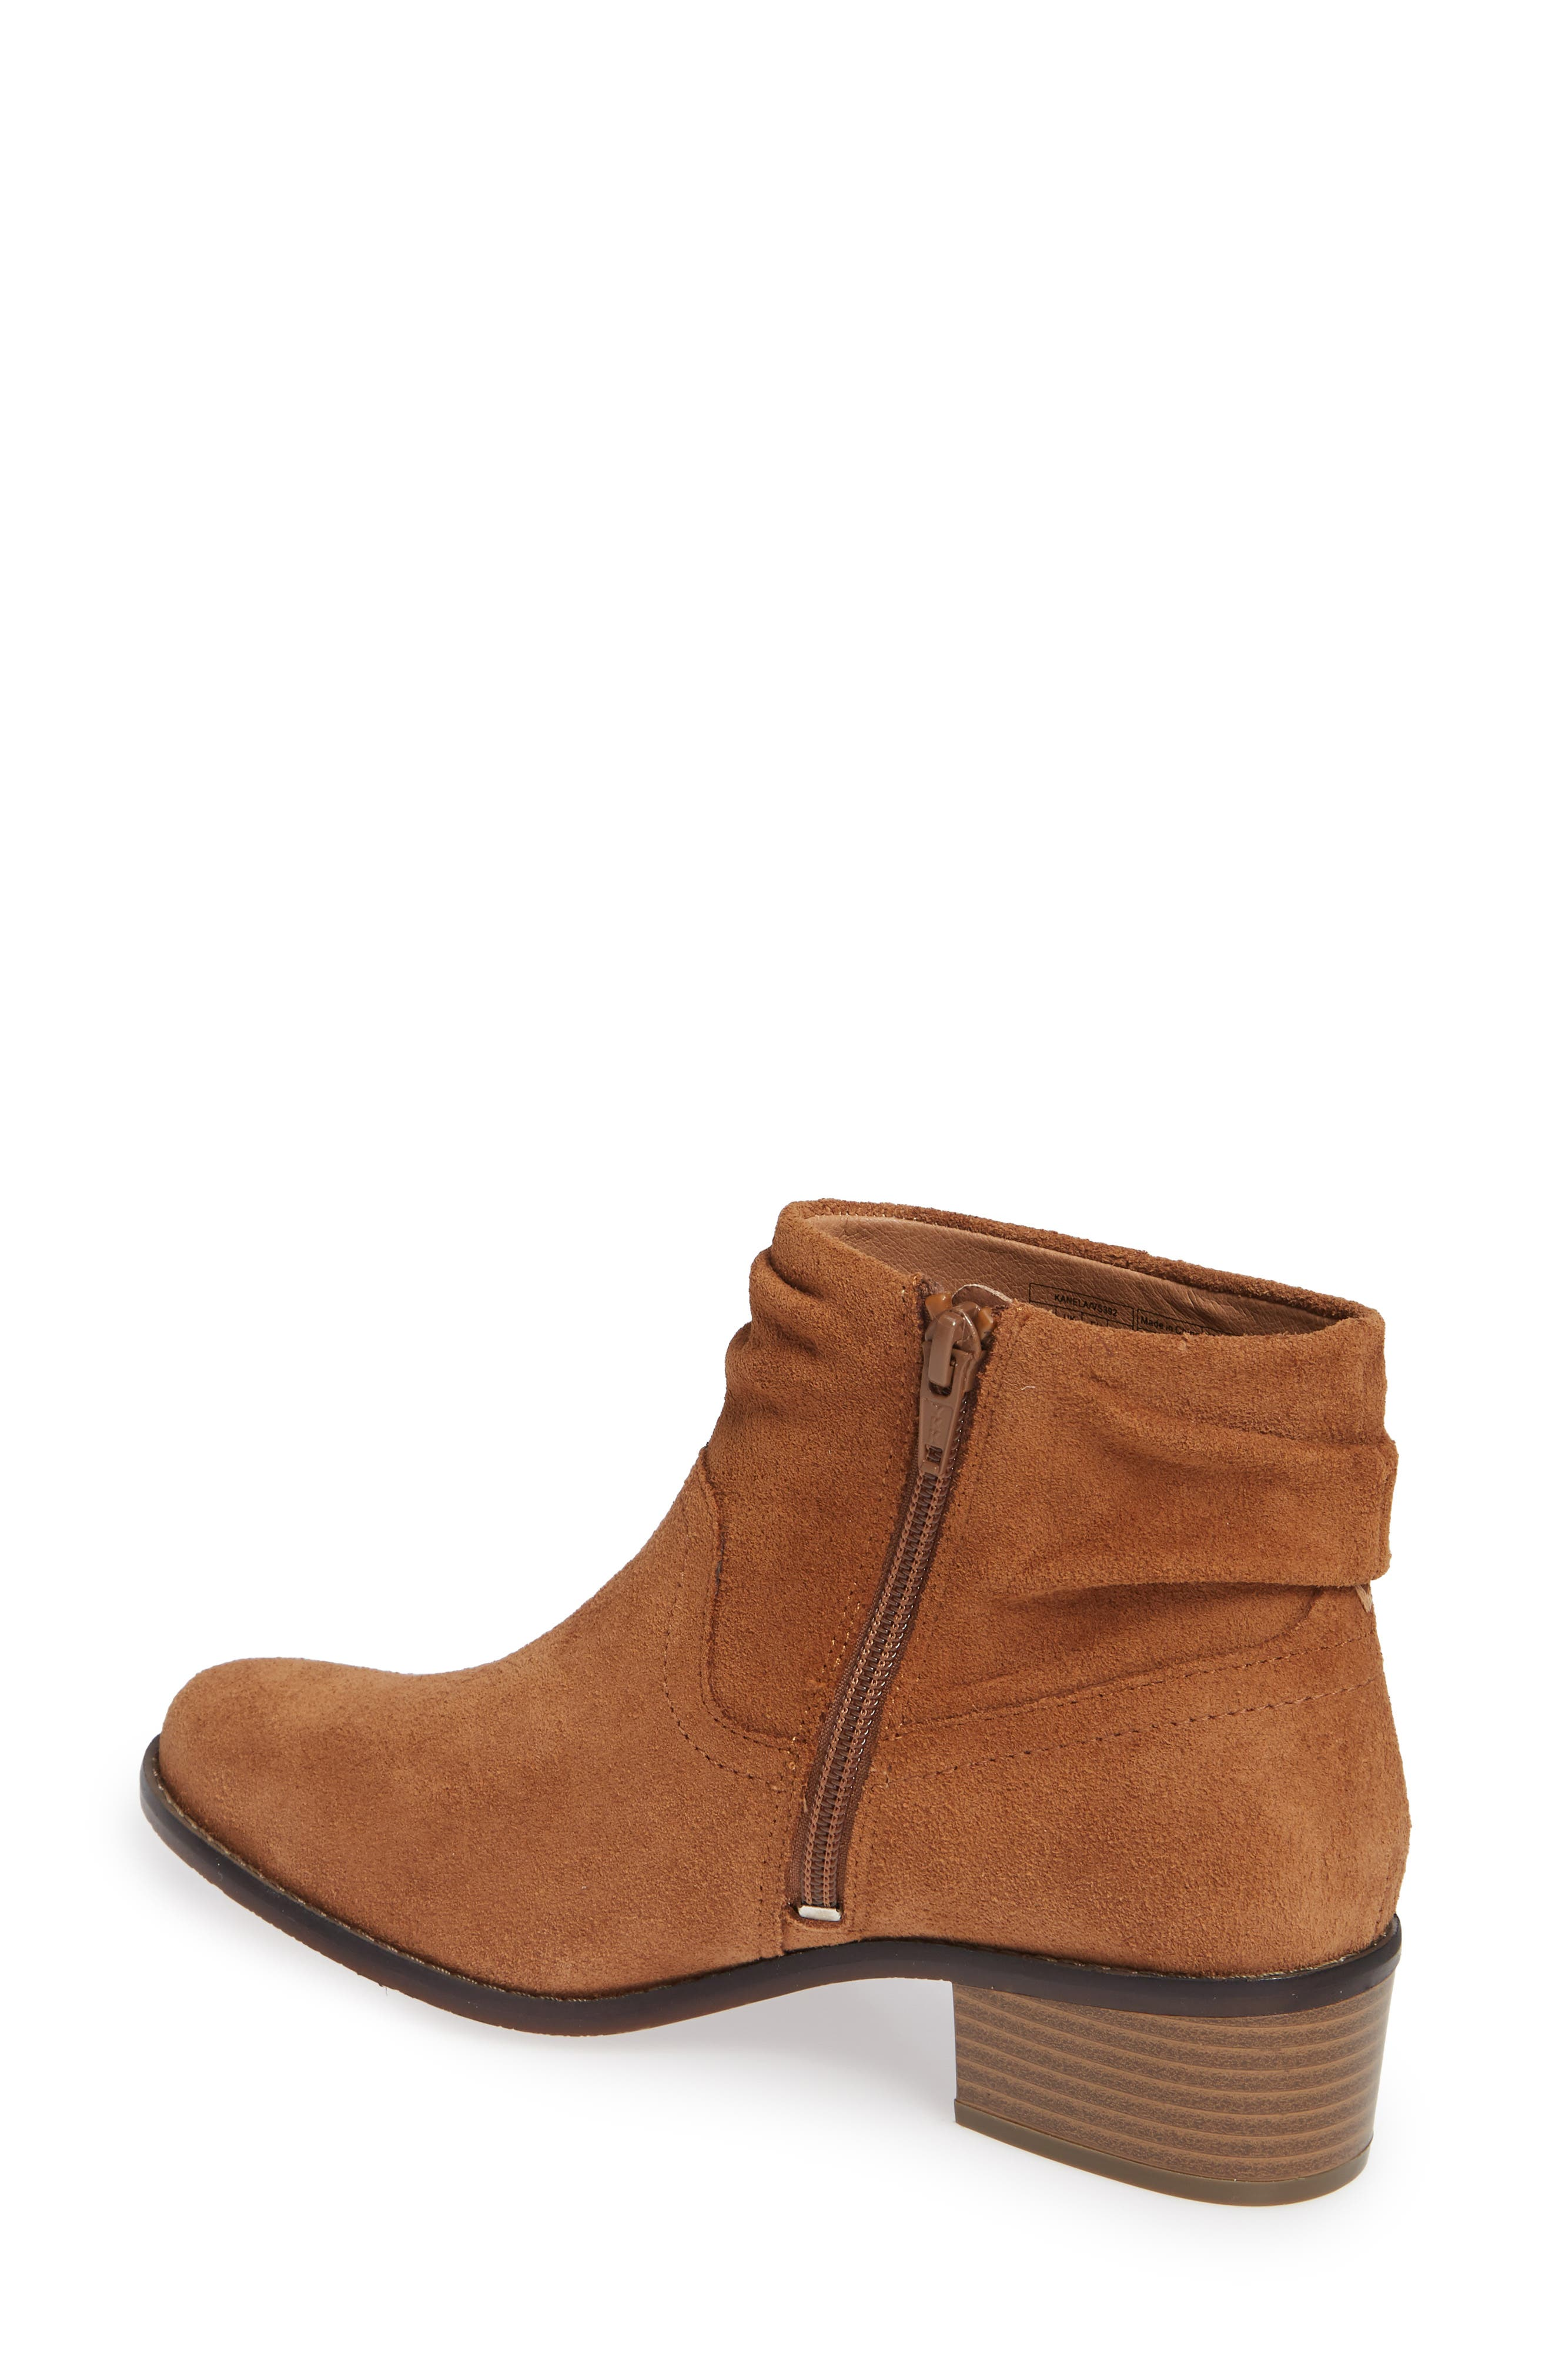 Kanela Low Slouchy Bootie,                             Alternate thumbnail 2, color,                             TOFFEE SUEDE